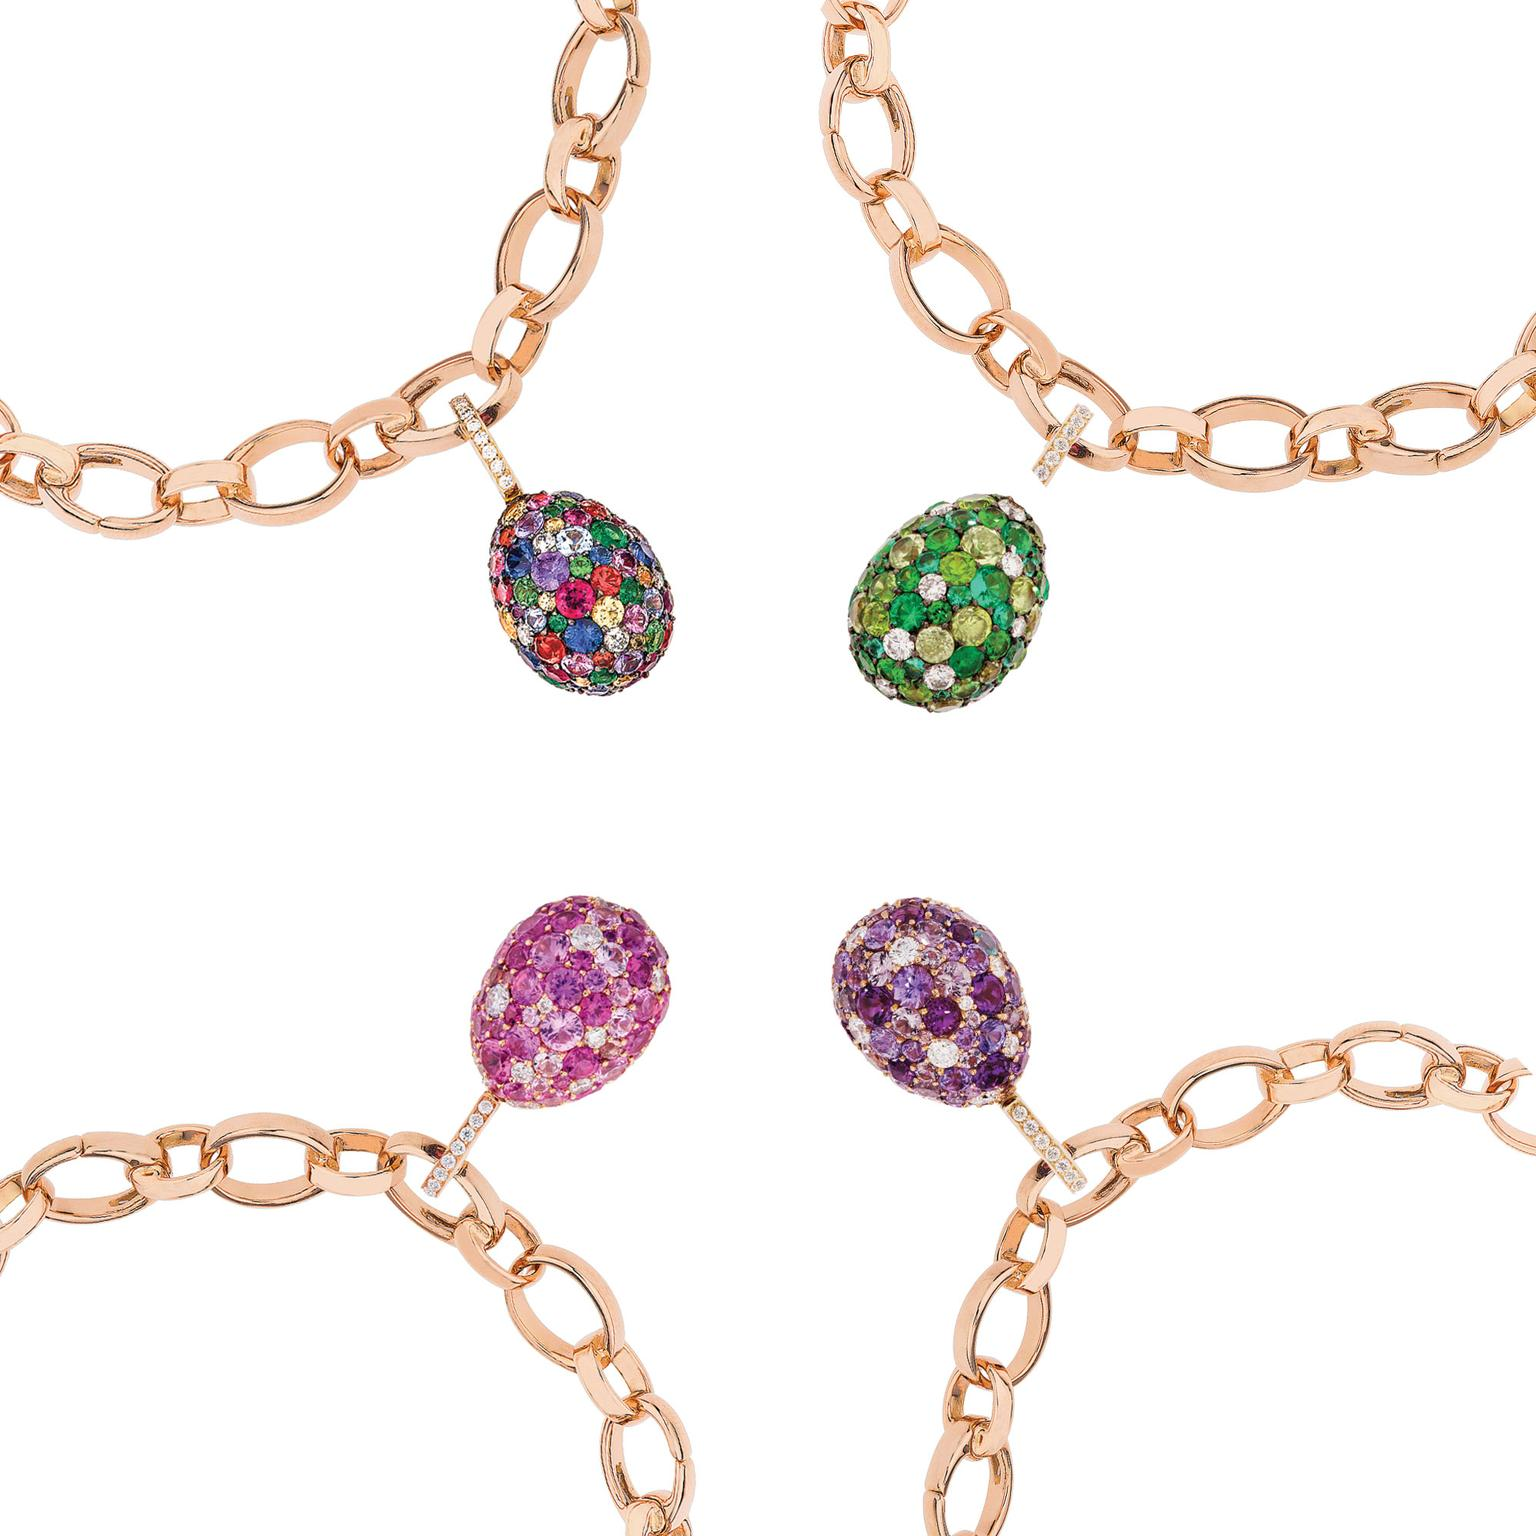 Fabergé Emotion egg charms